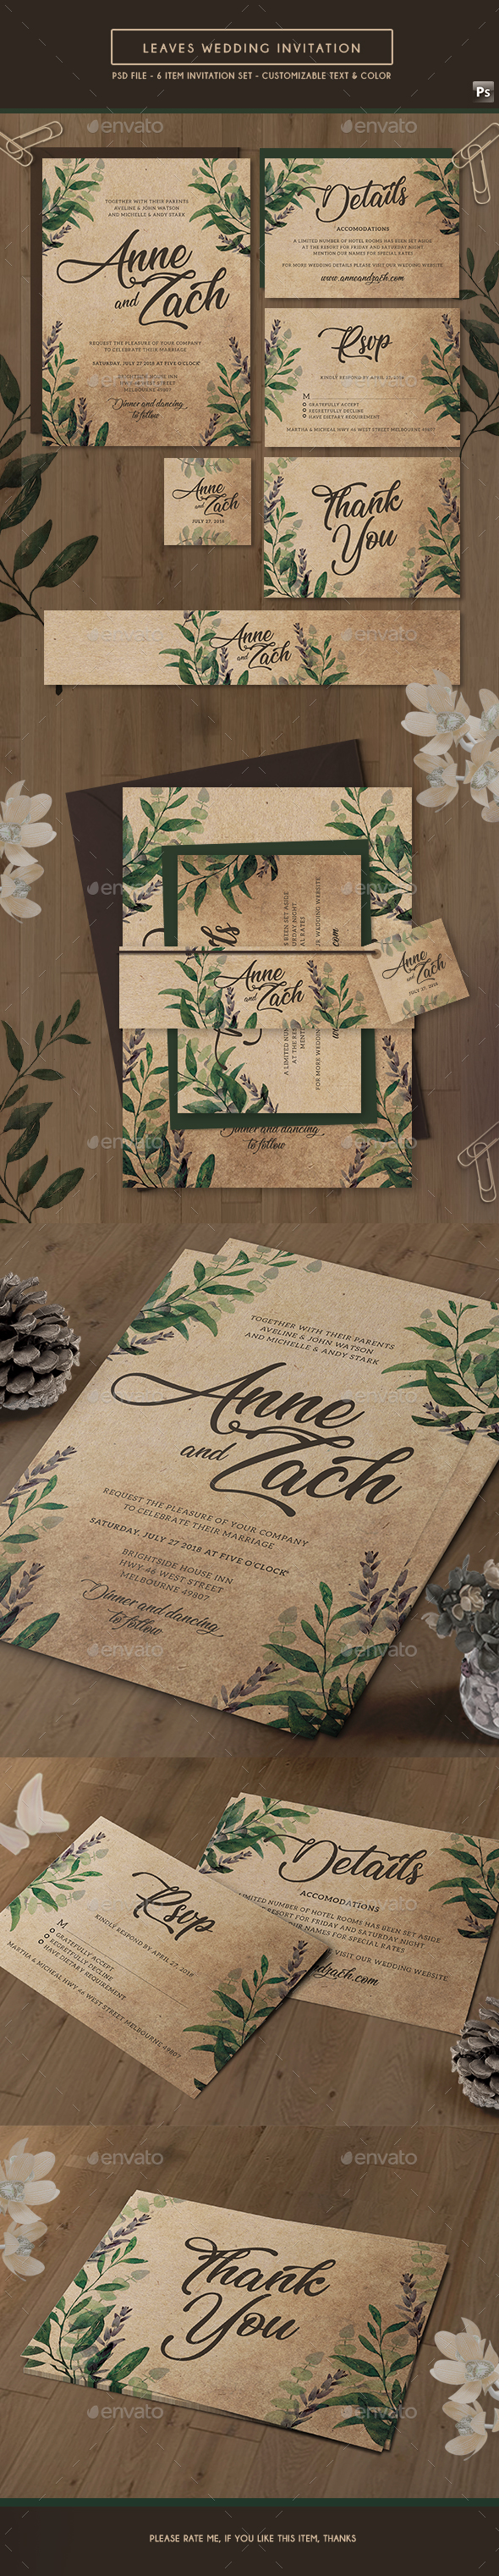 Leaves Wedding Invitation - Weddings Cards & Invites